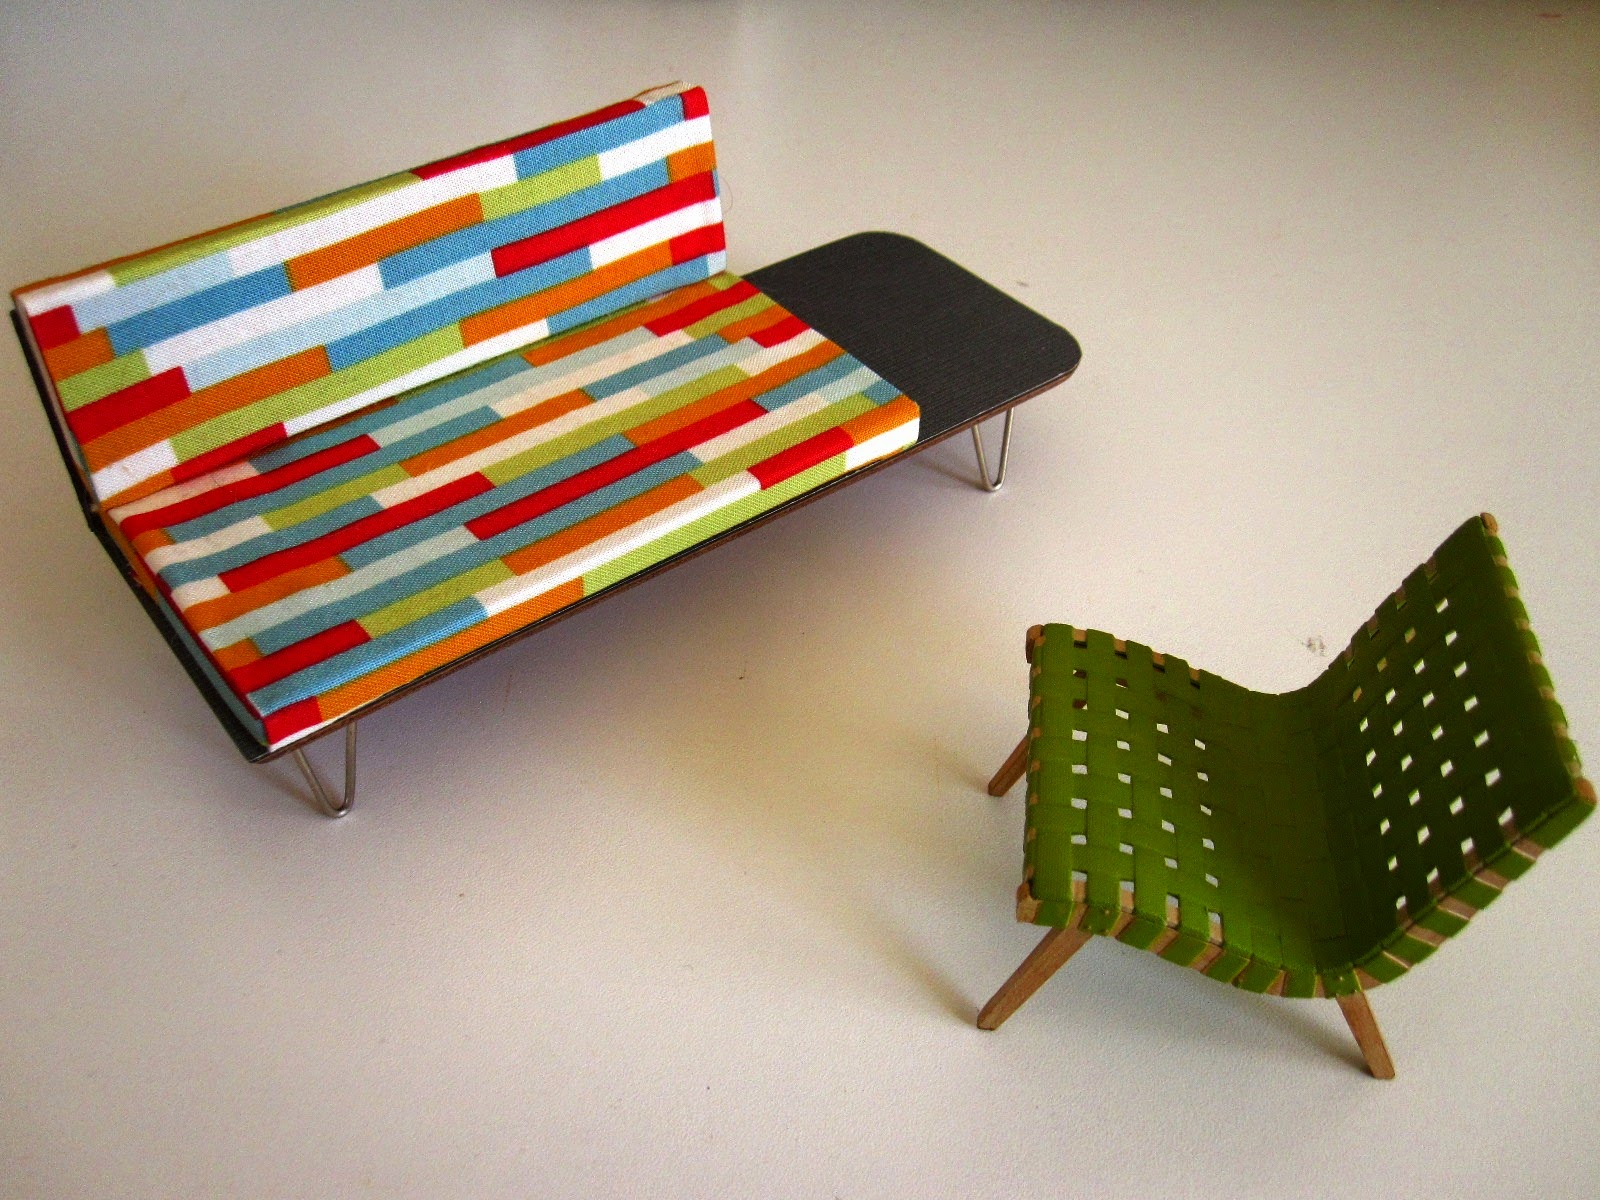 Mid century modern miniature sofa with attached coffee table and Jens Risom armchair,